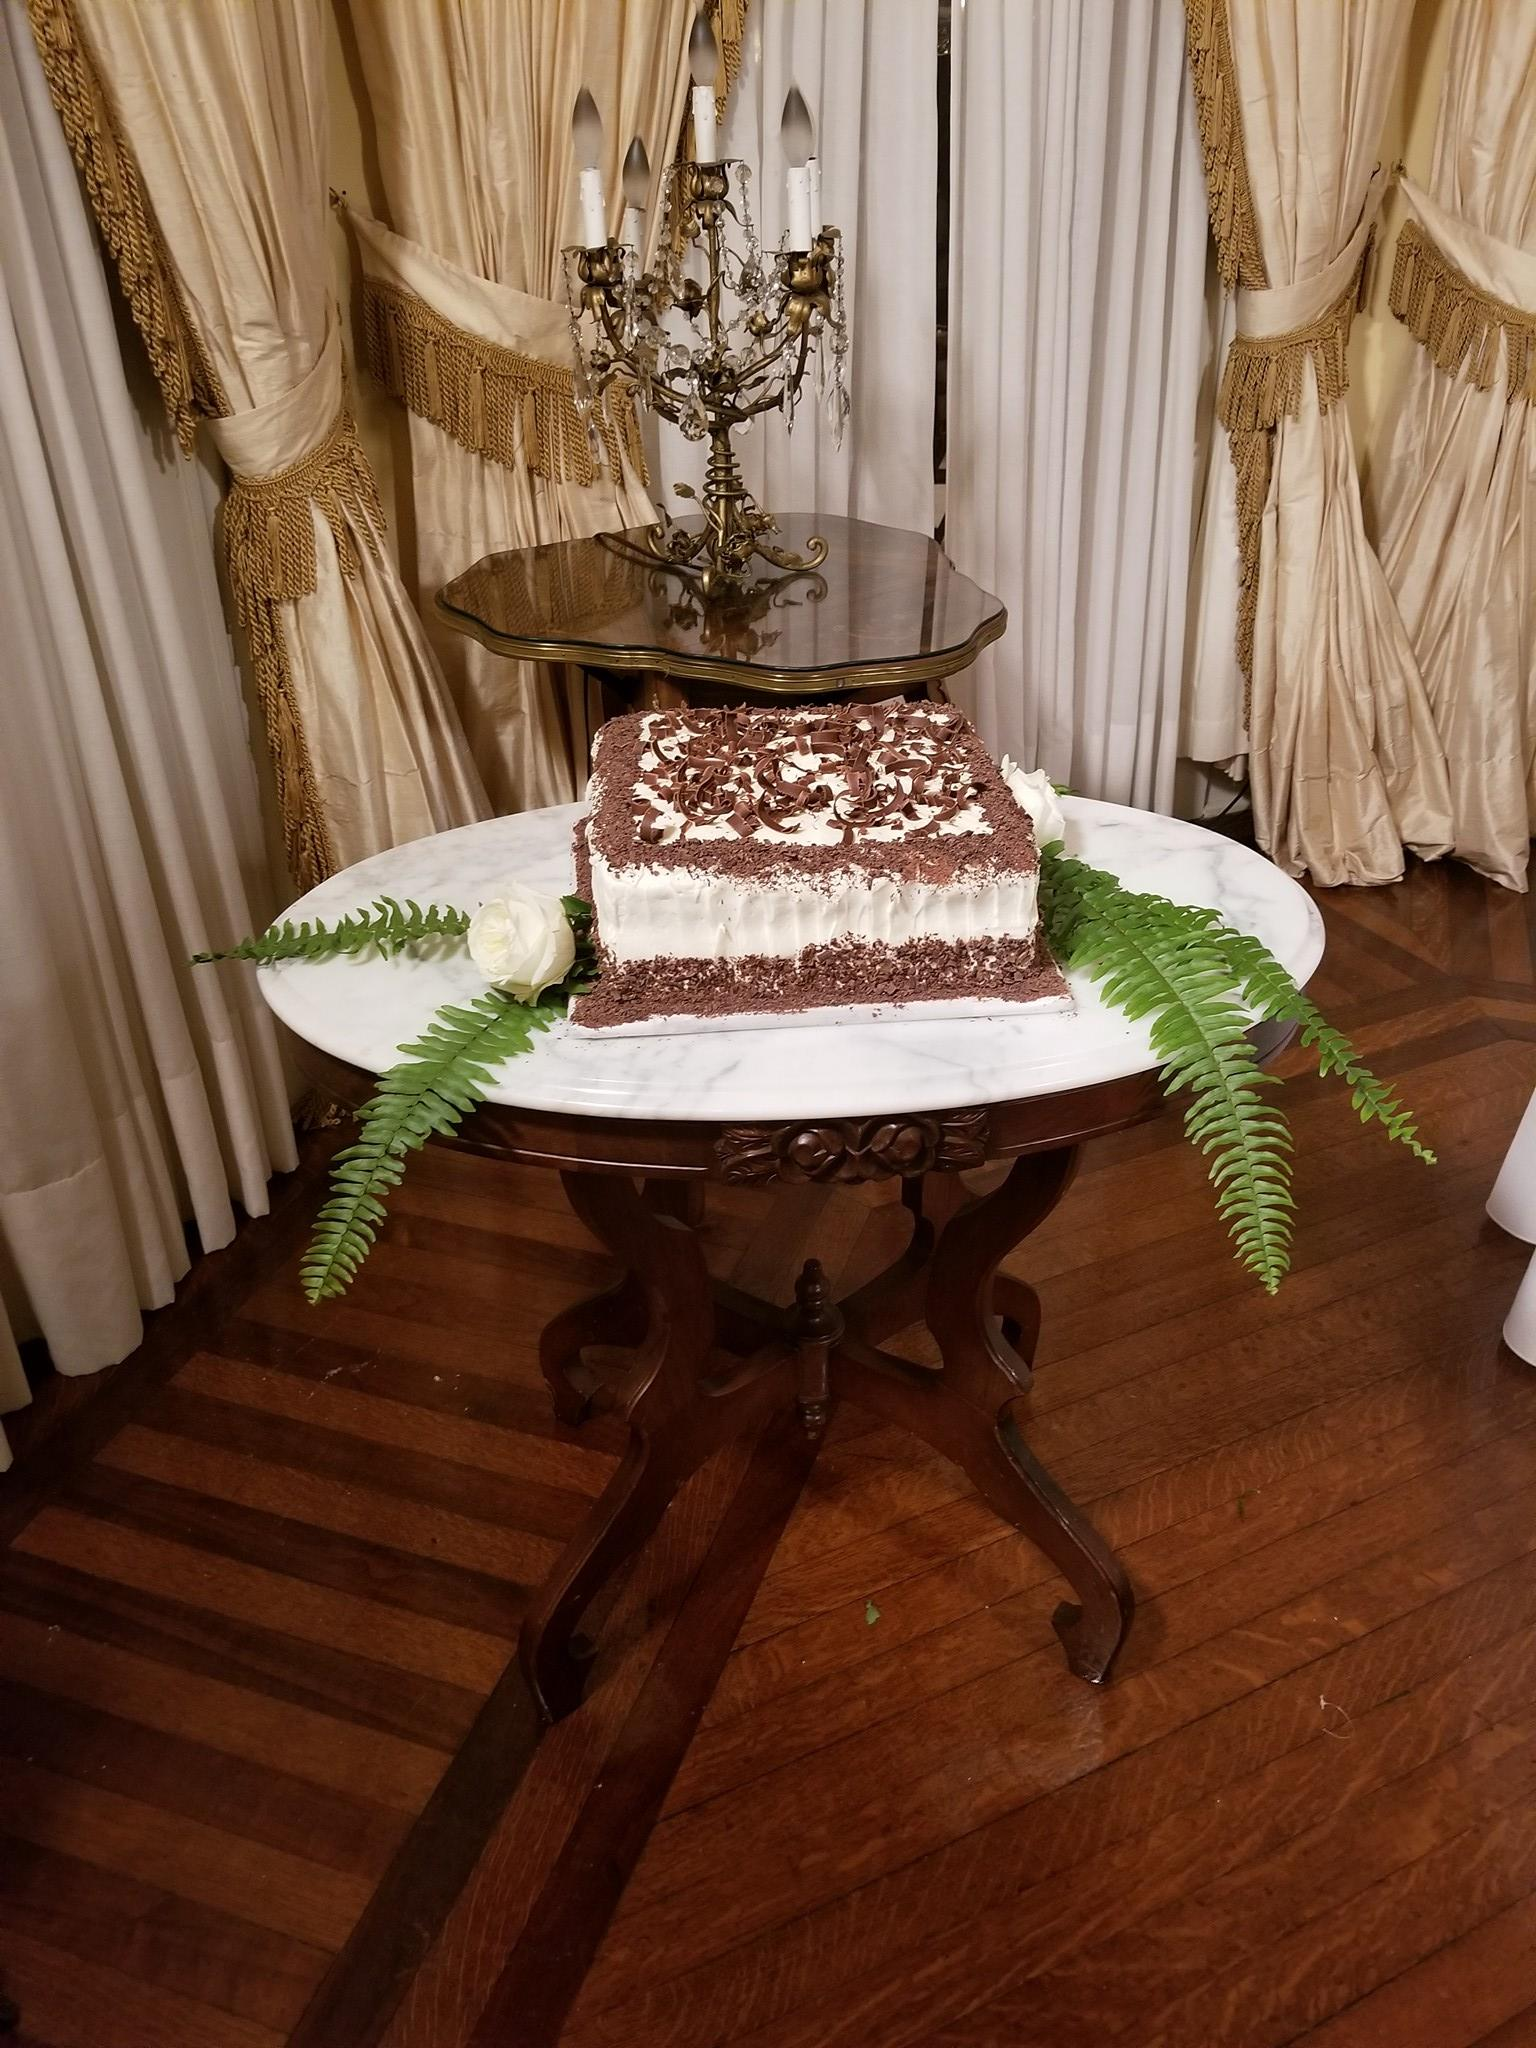 Grooms cake table